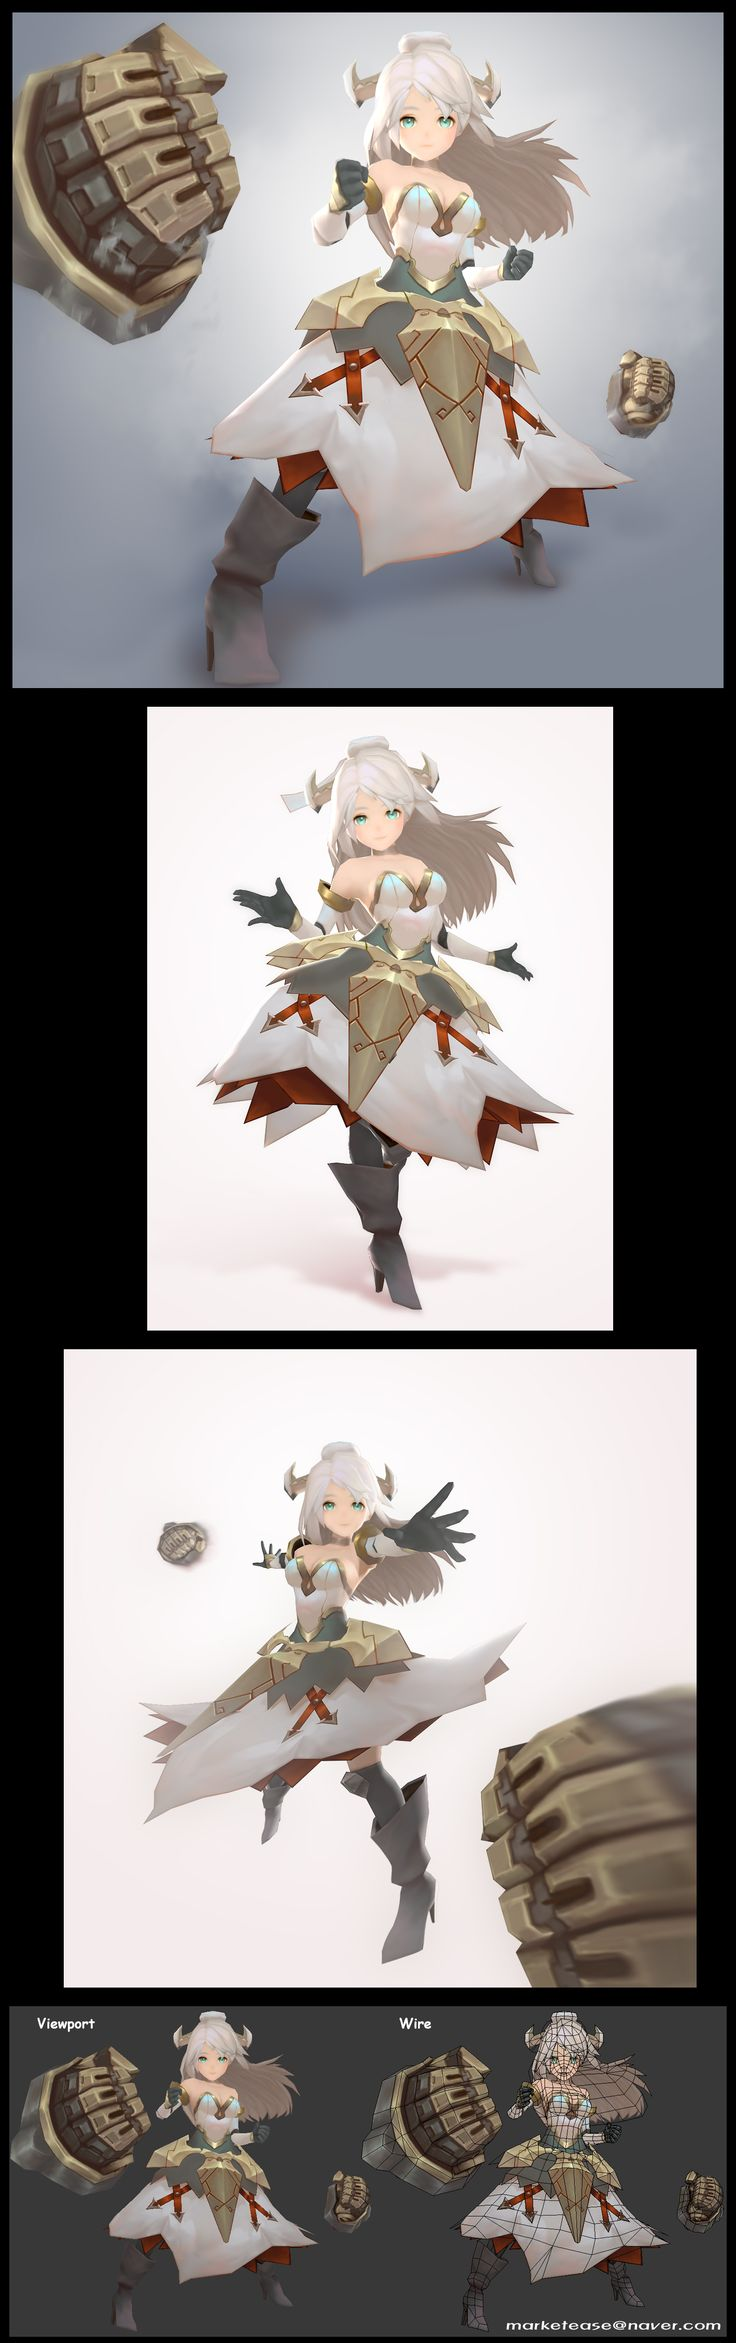 3d low poly character, anime style, Korean 3d character design, hand painted texture